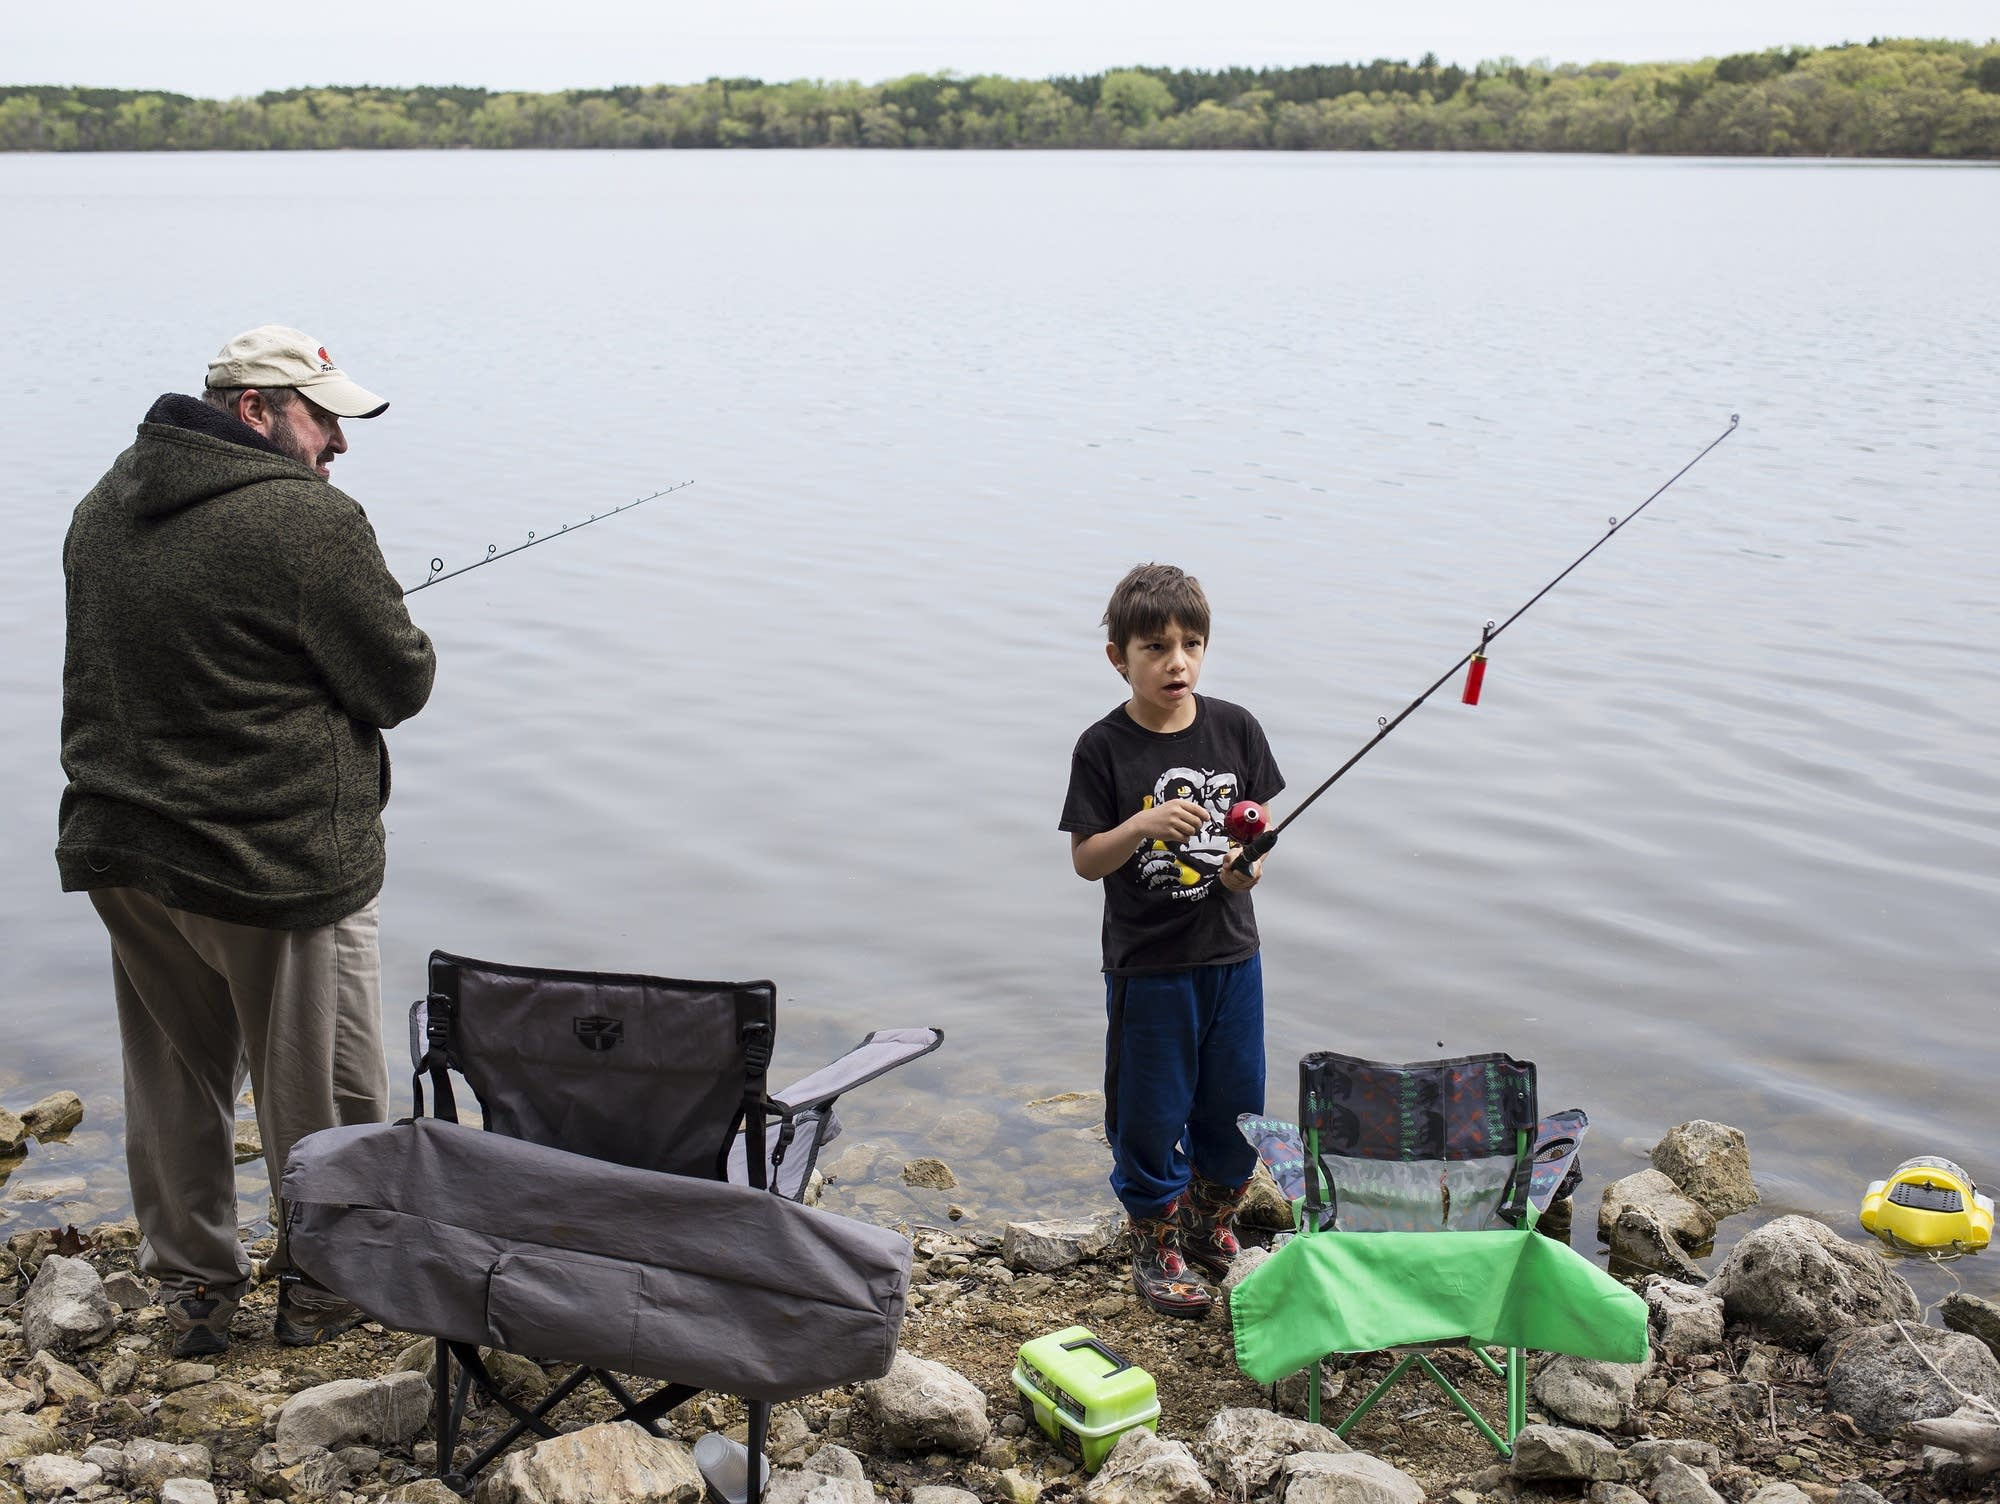 Hunter Johnson realizes his fishing line has become tangled